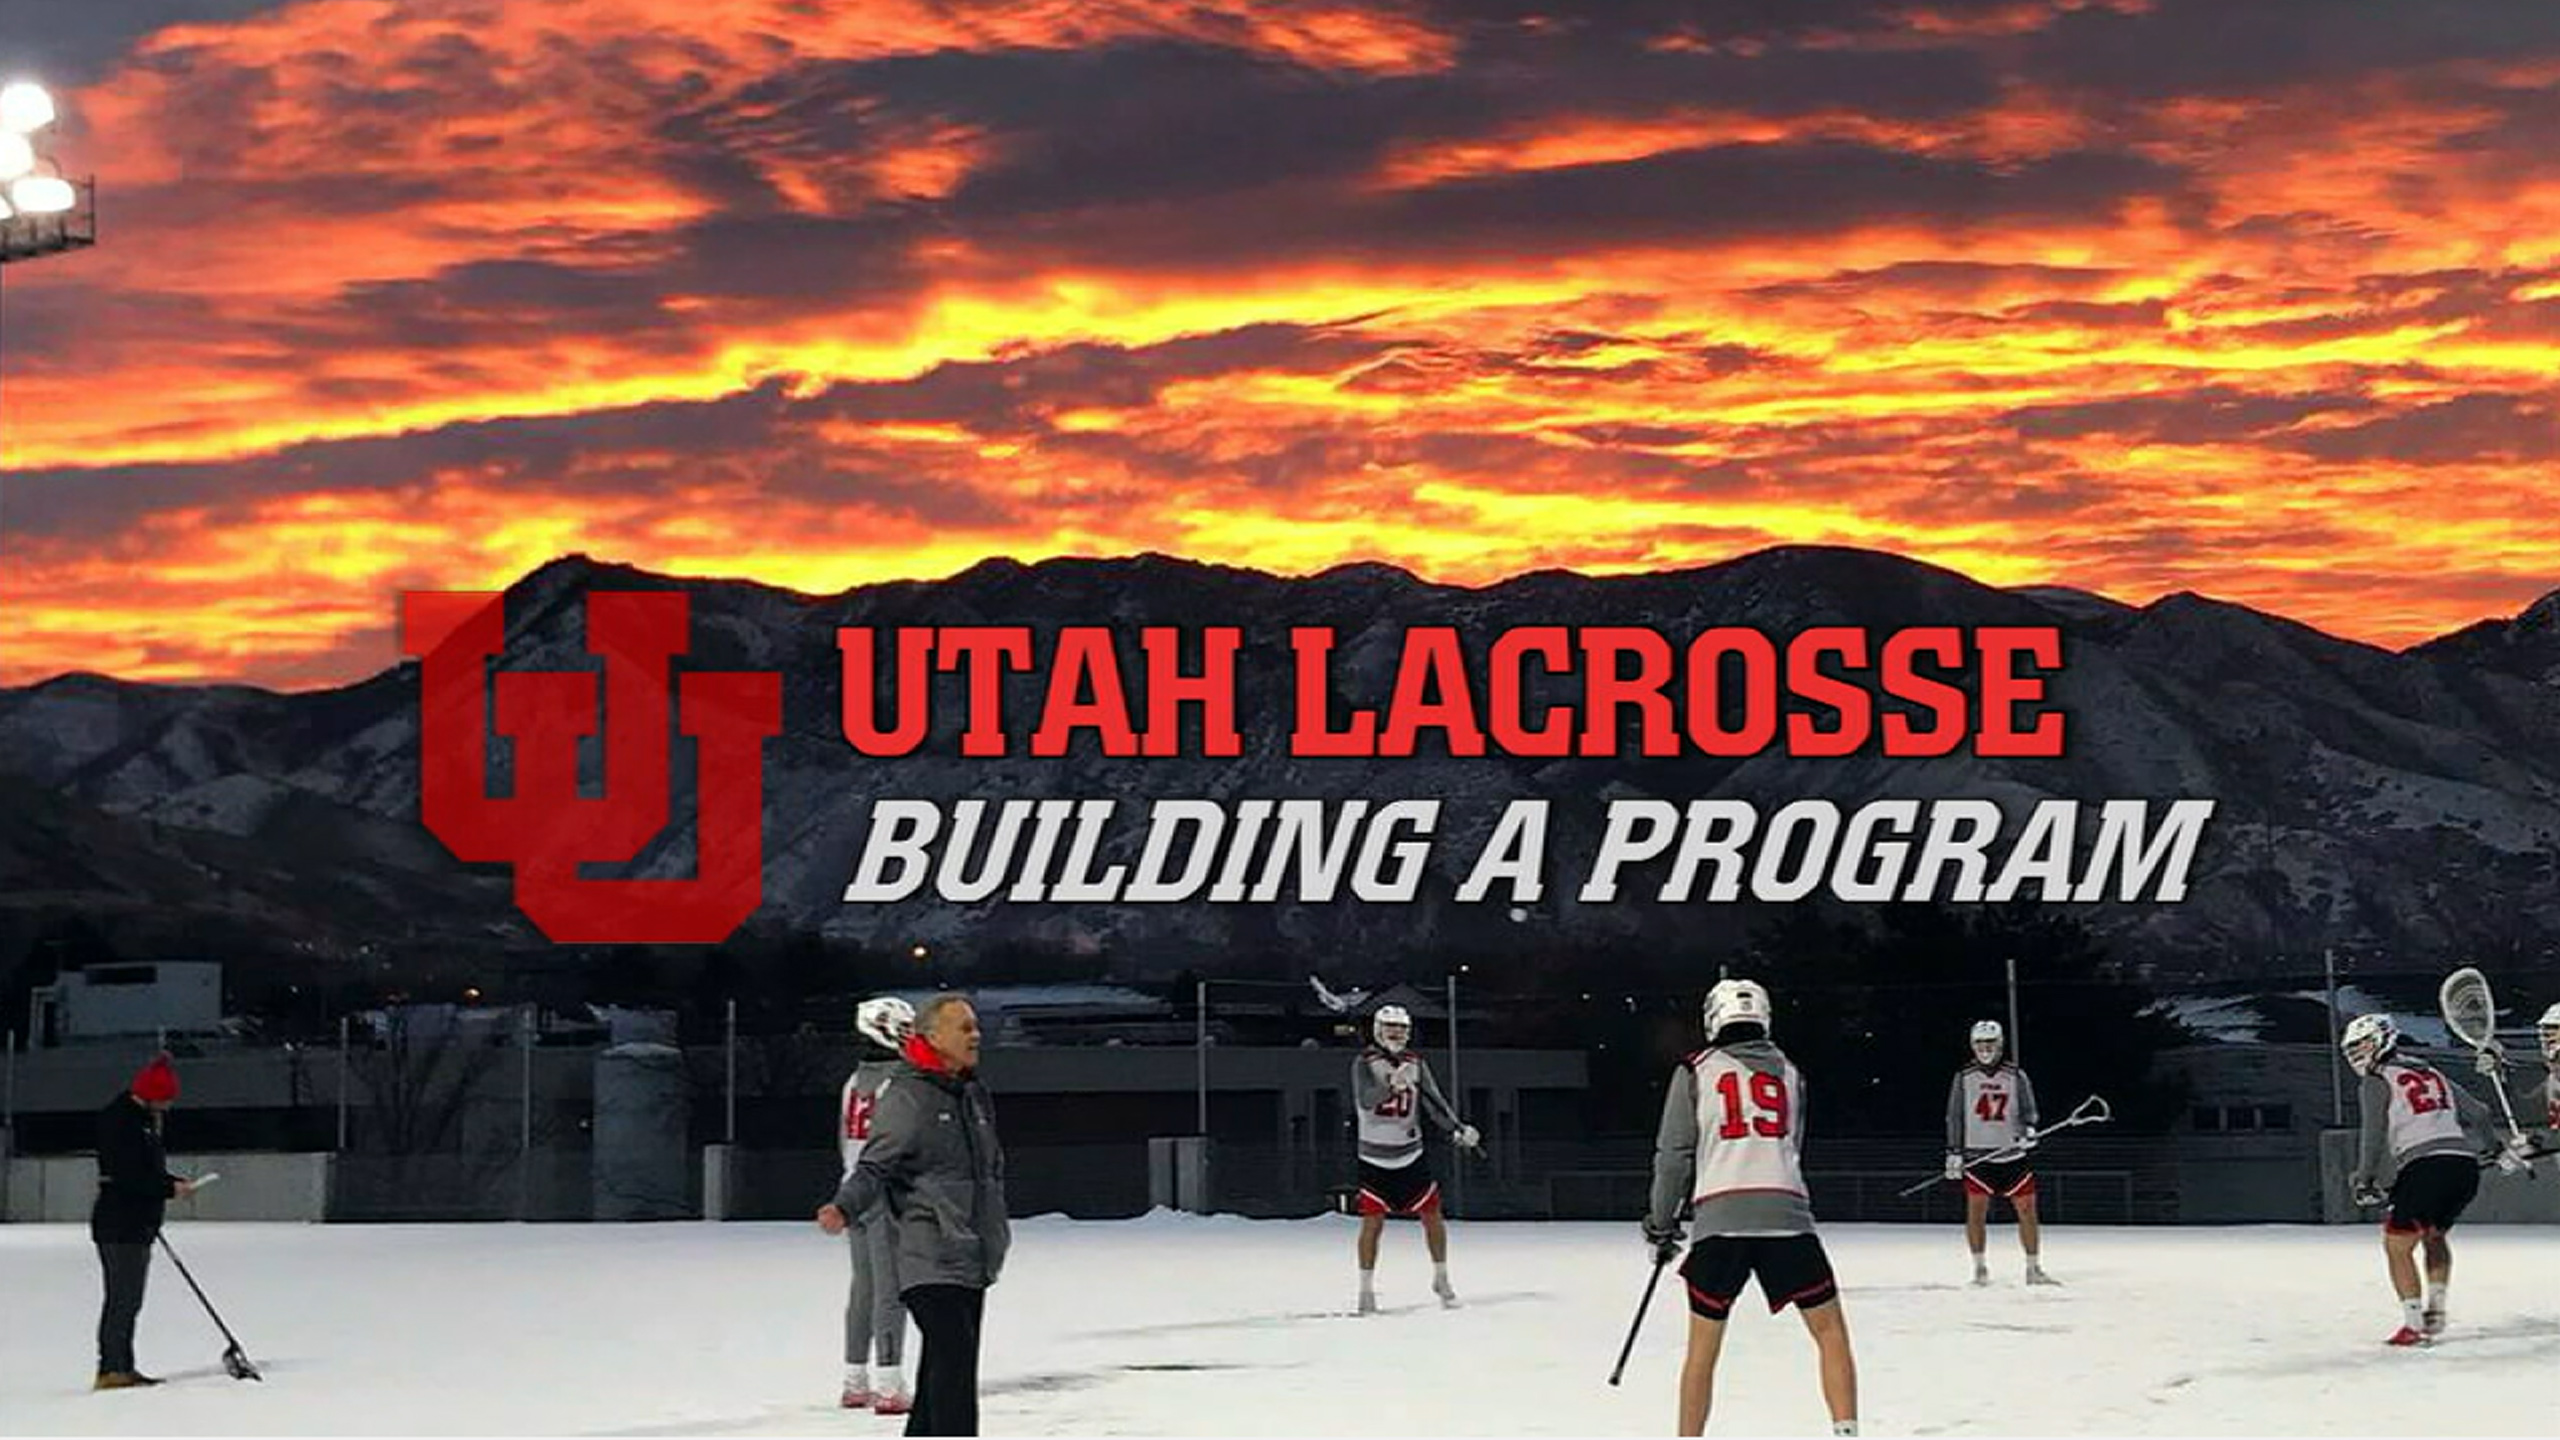 Utah Lacrosse: Building A Program